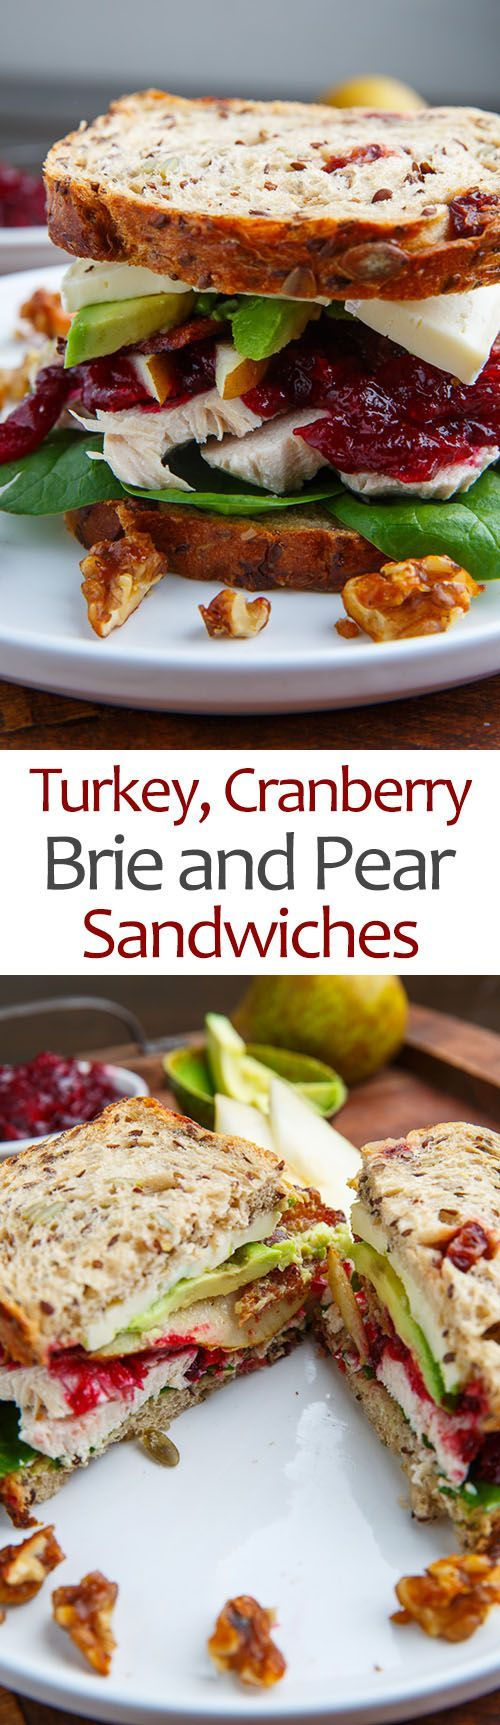 Turkey, Cranberry, Brie and Pear Sandwiches with Avocado and Bacon.  Looking for that something different well here it is.  Get good solid bread for this one.  Get bread from the Bakery.